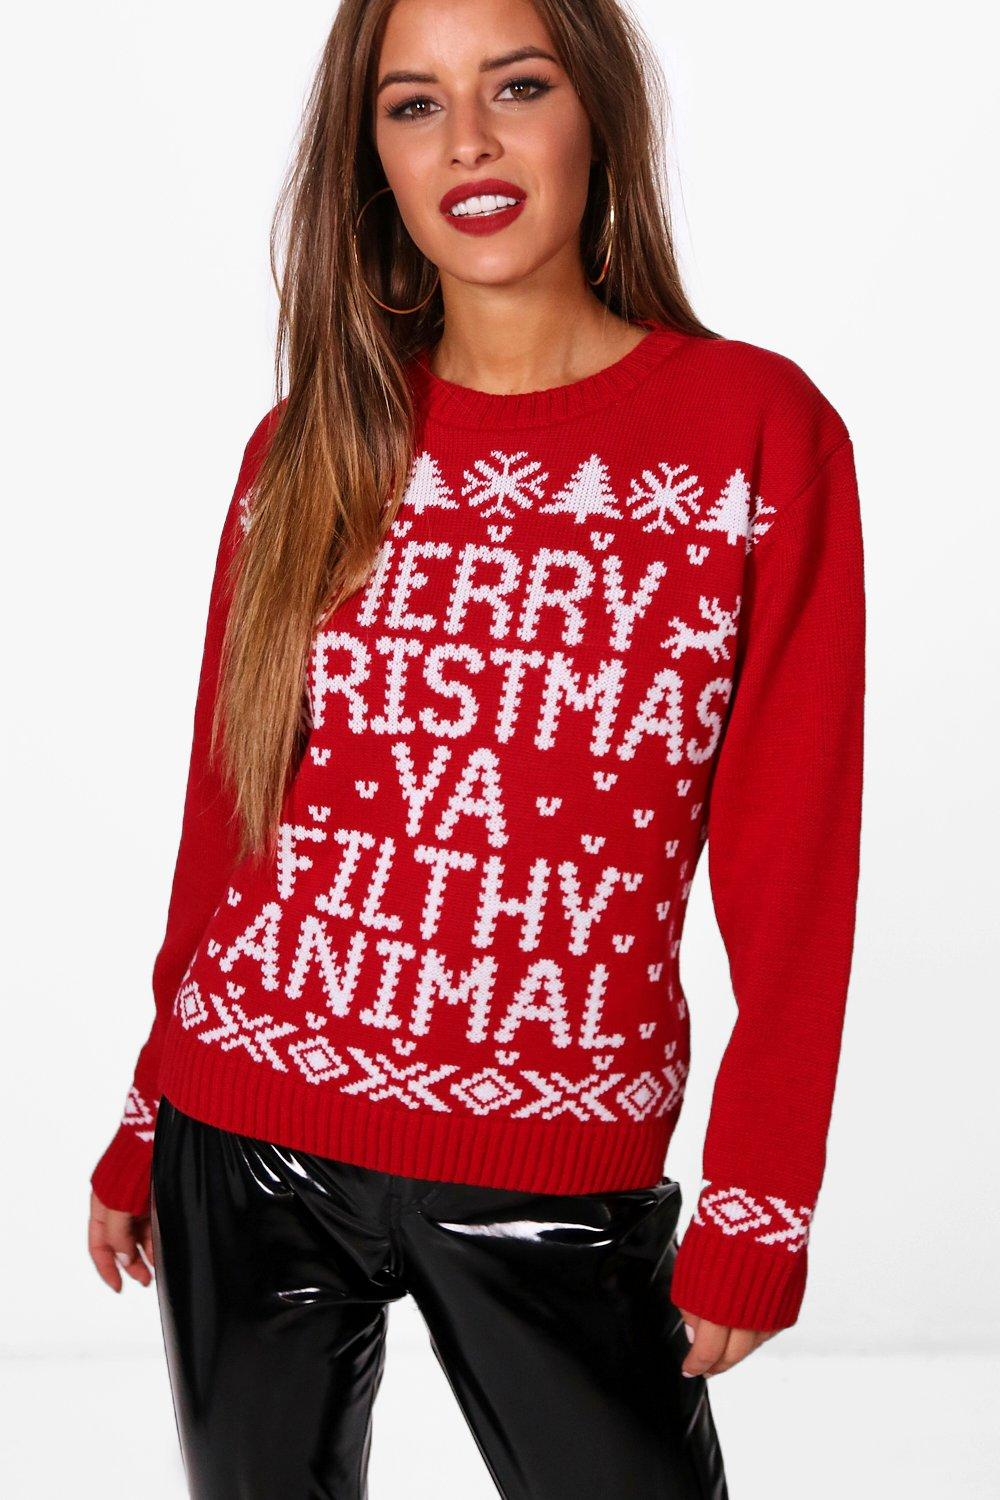 petite eve merry christmas ya filfy animal jumper | boohoo